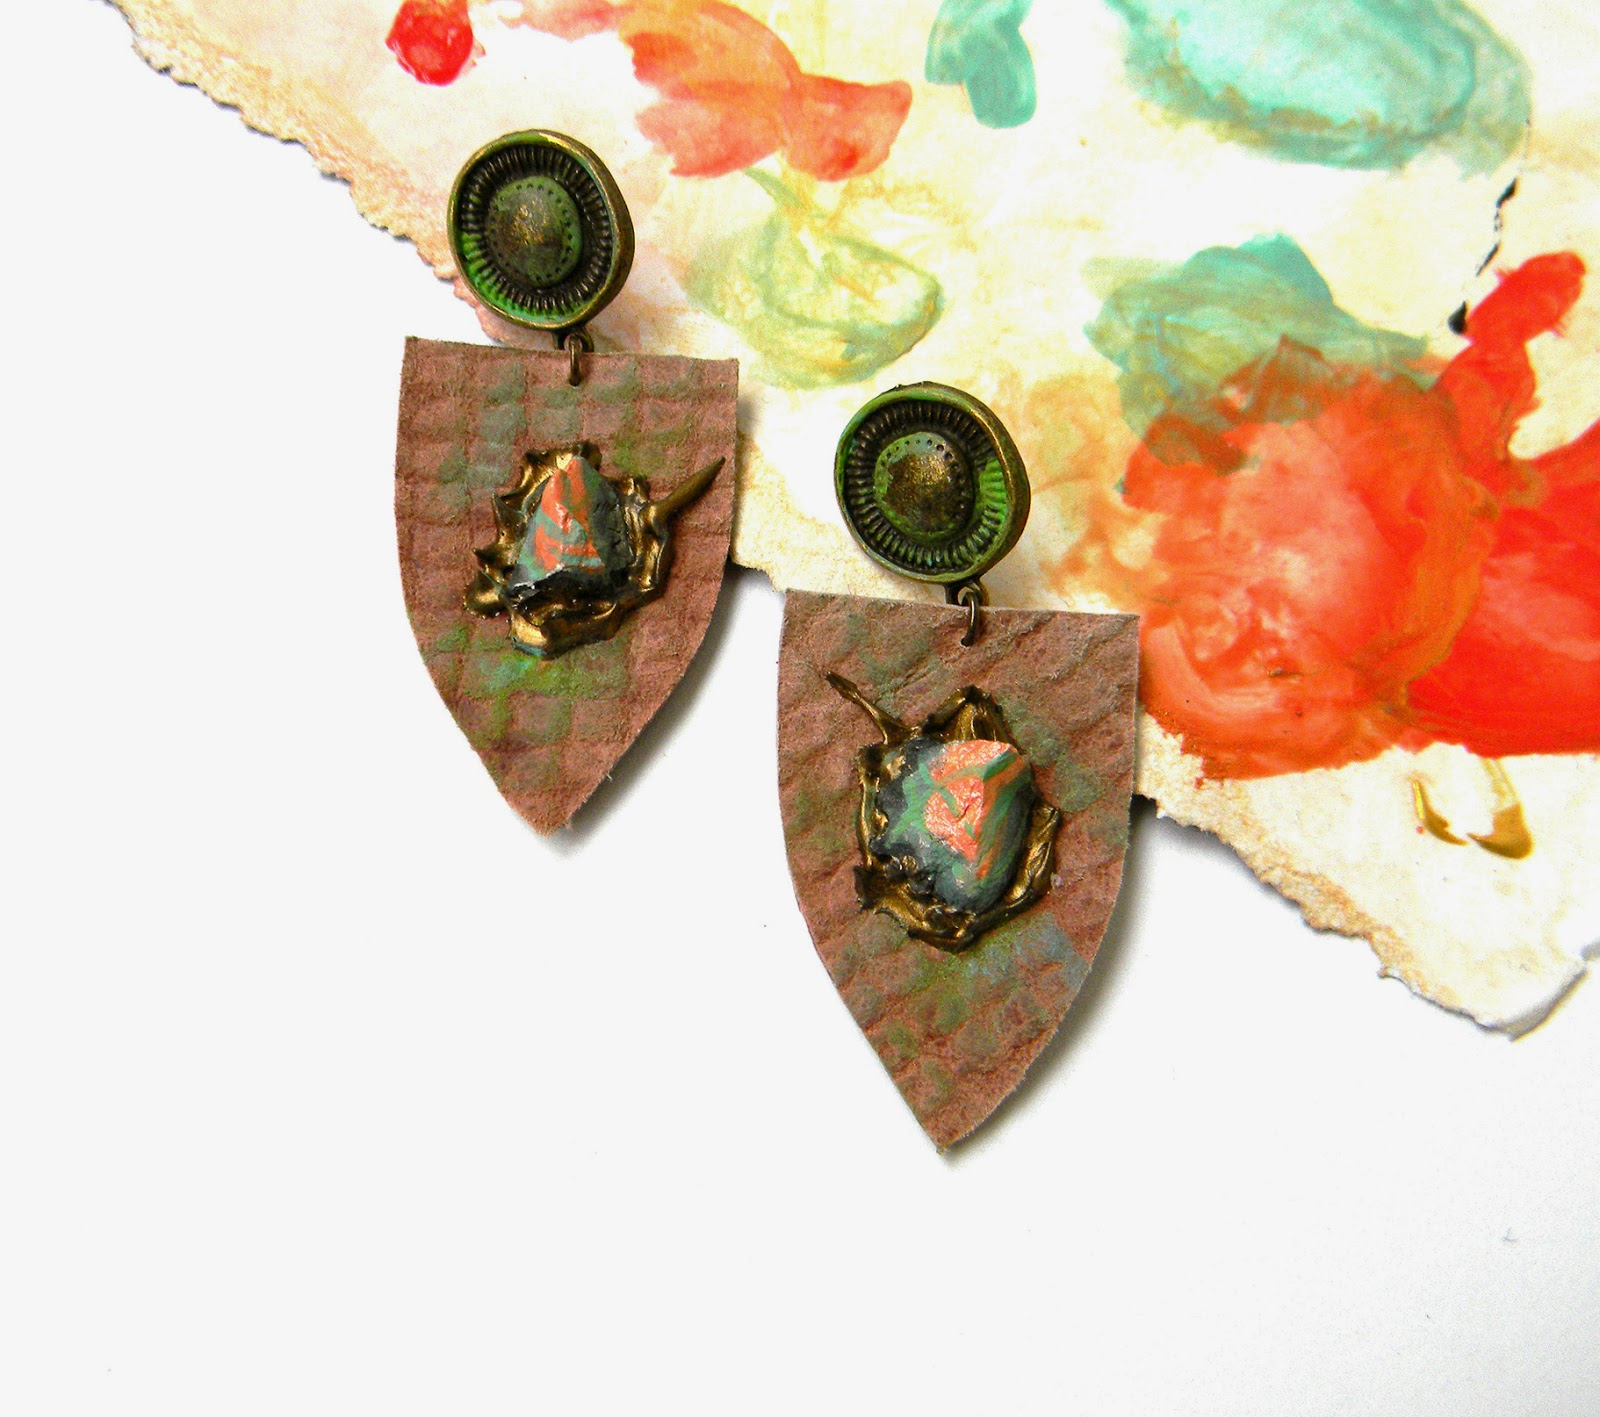 Abstract Leather Earrings with Hand Painted Clay Shapes